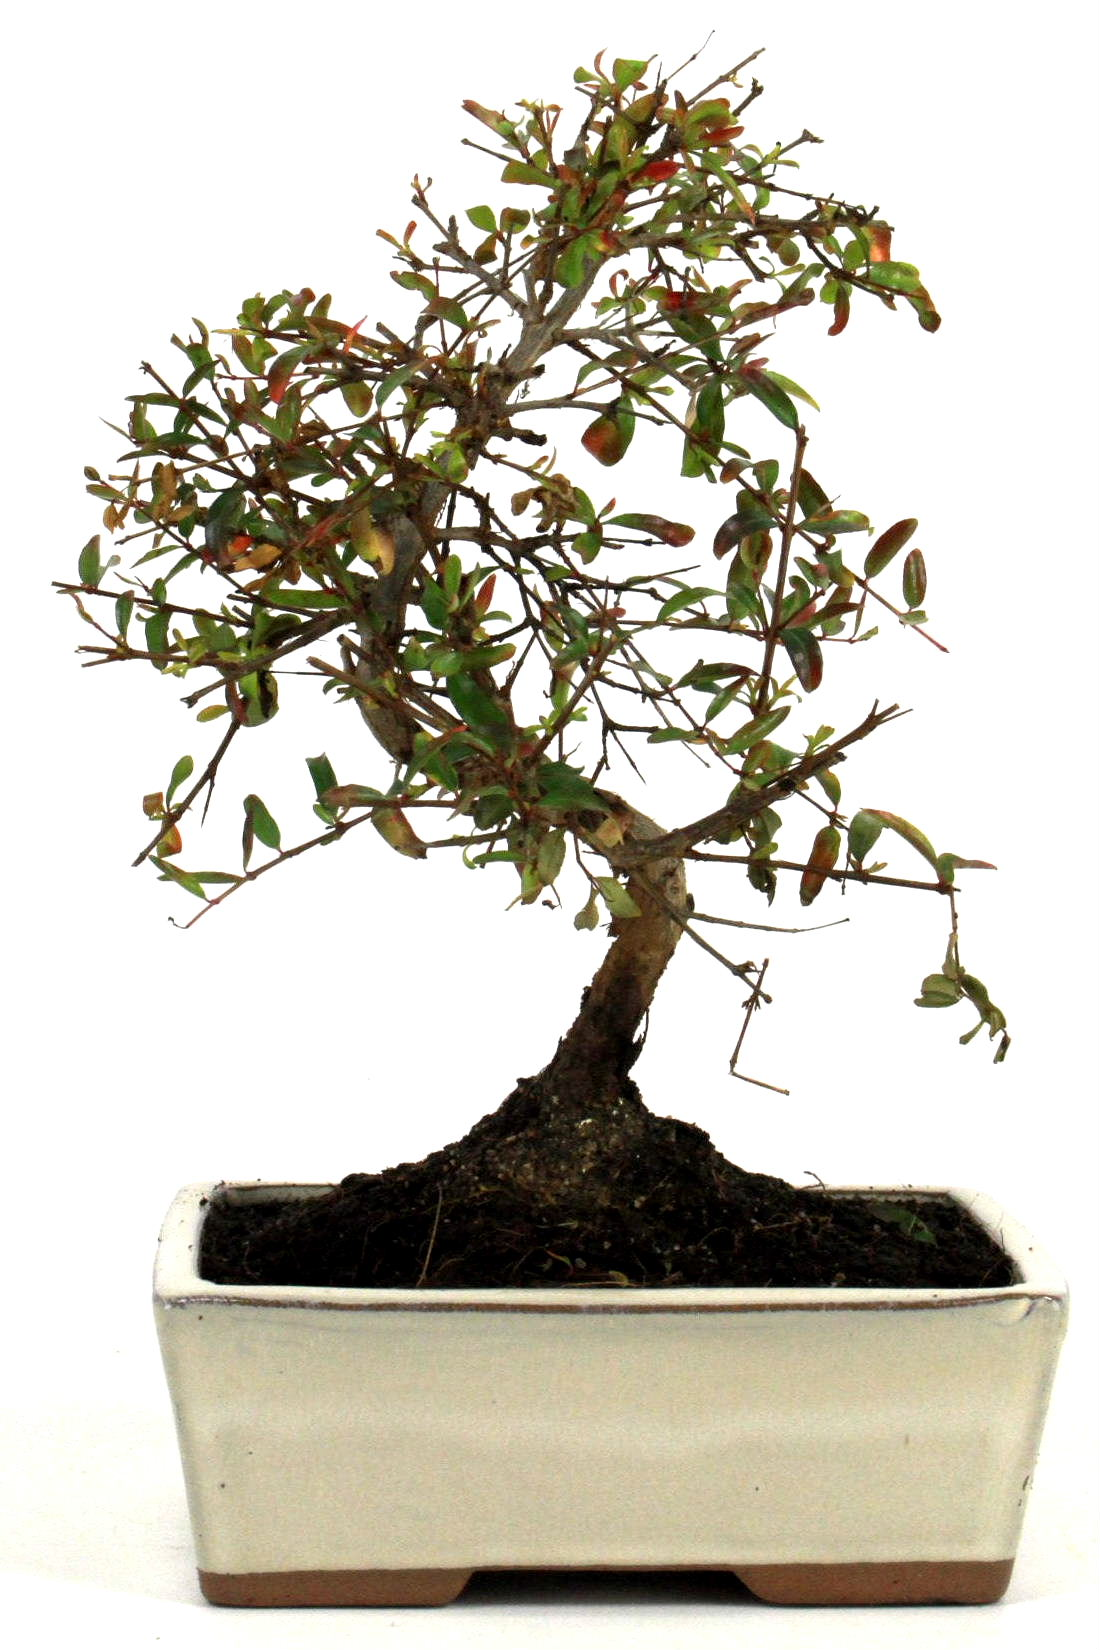 Granatapfel bonsai 25 30 cm 1615 bei oyaki bonsai kaufen for Bonsai onlineshop